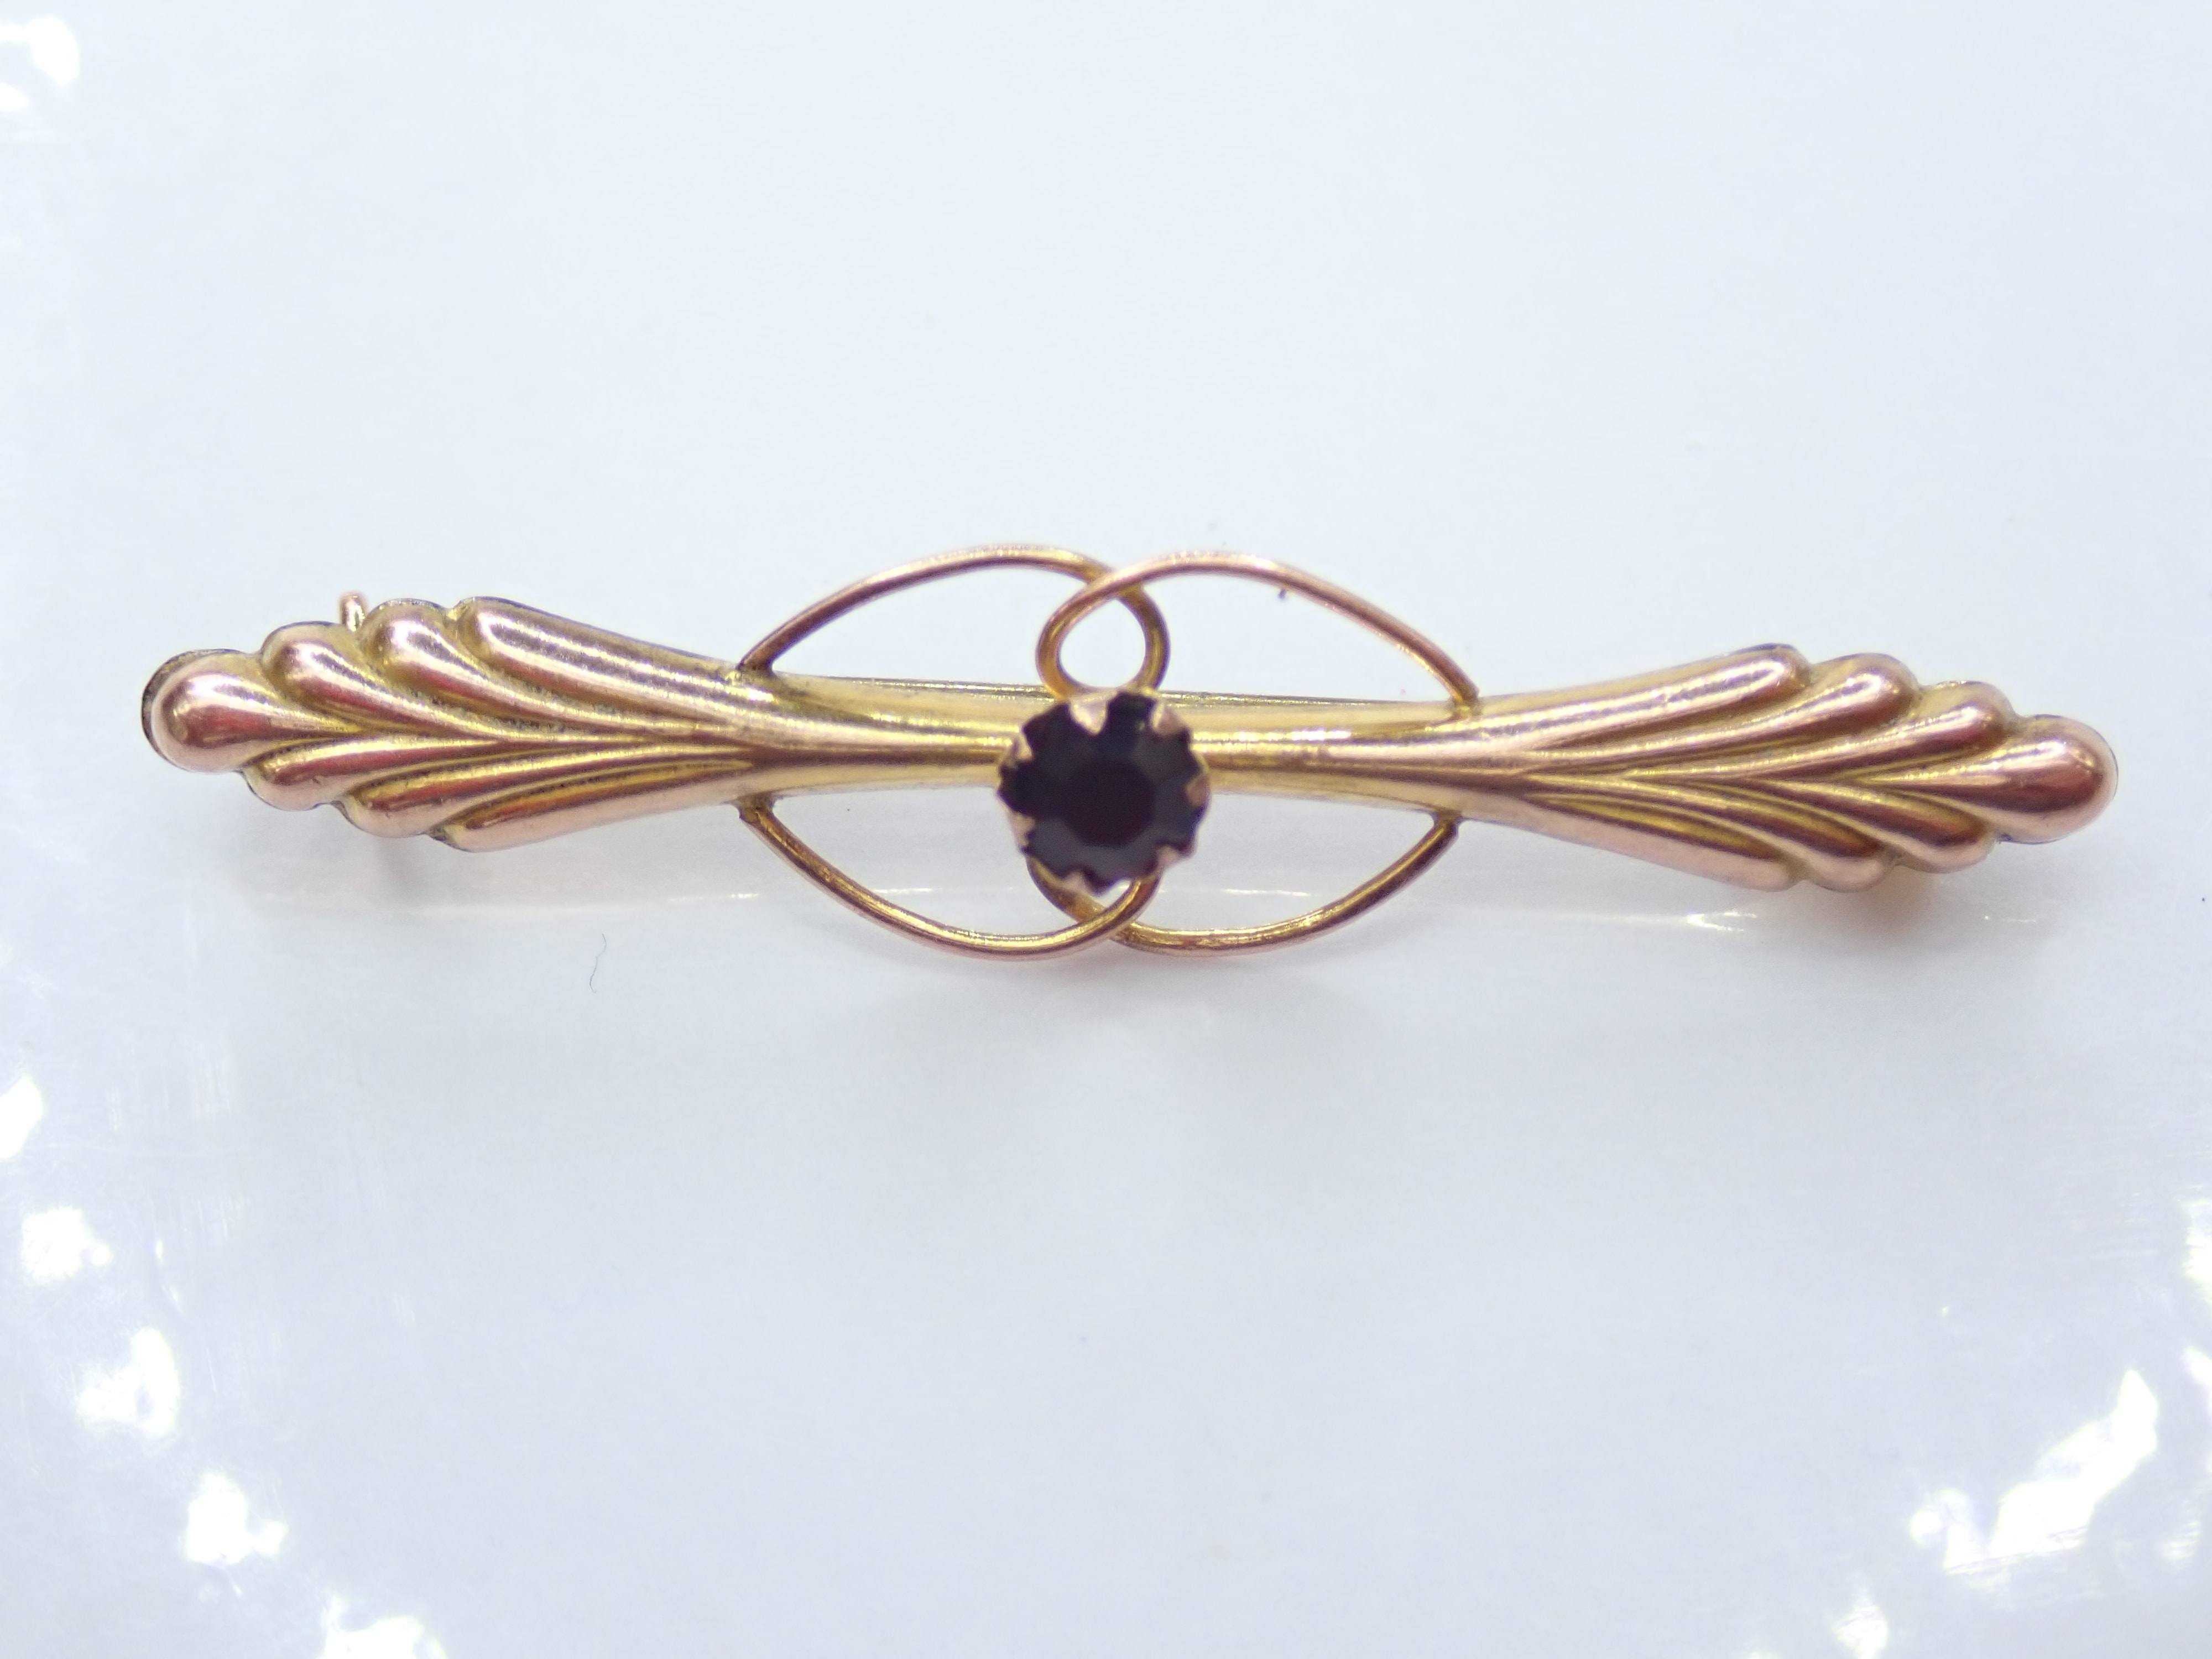 Antique!! 9ct Yellow Gold Red Garnet Pin Brooch 0.91g #7